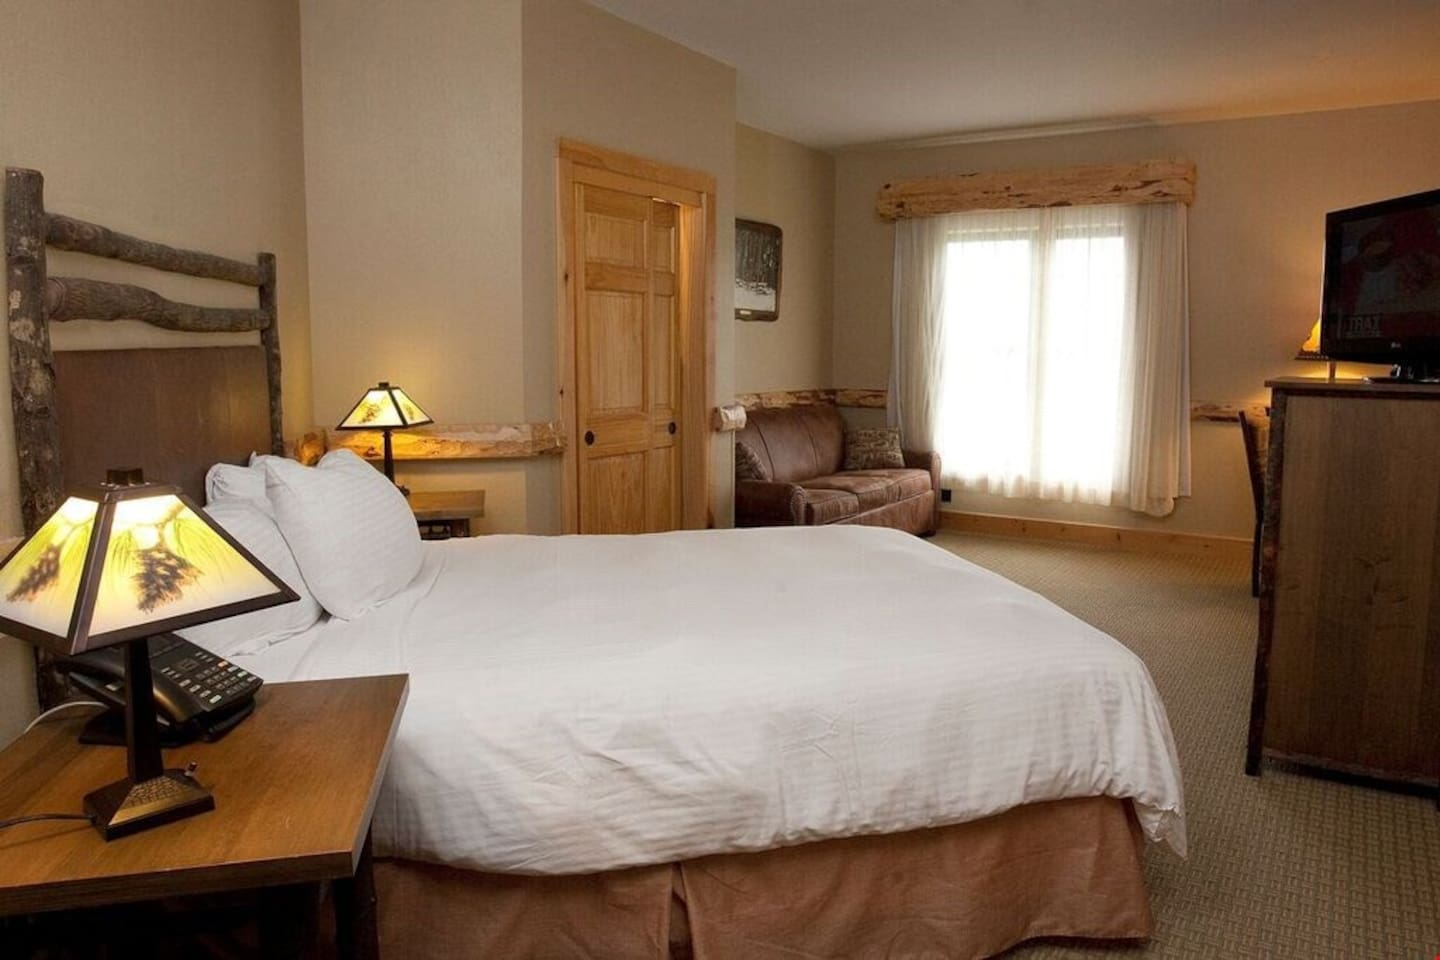 Drift off to sleep in the plush double bed